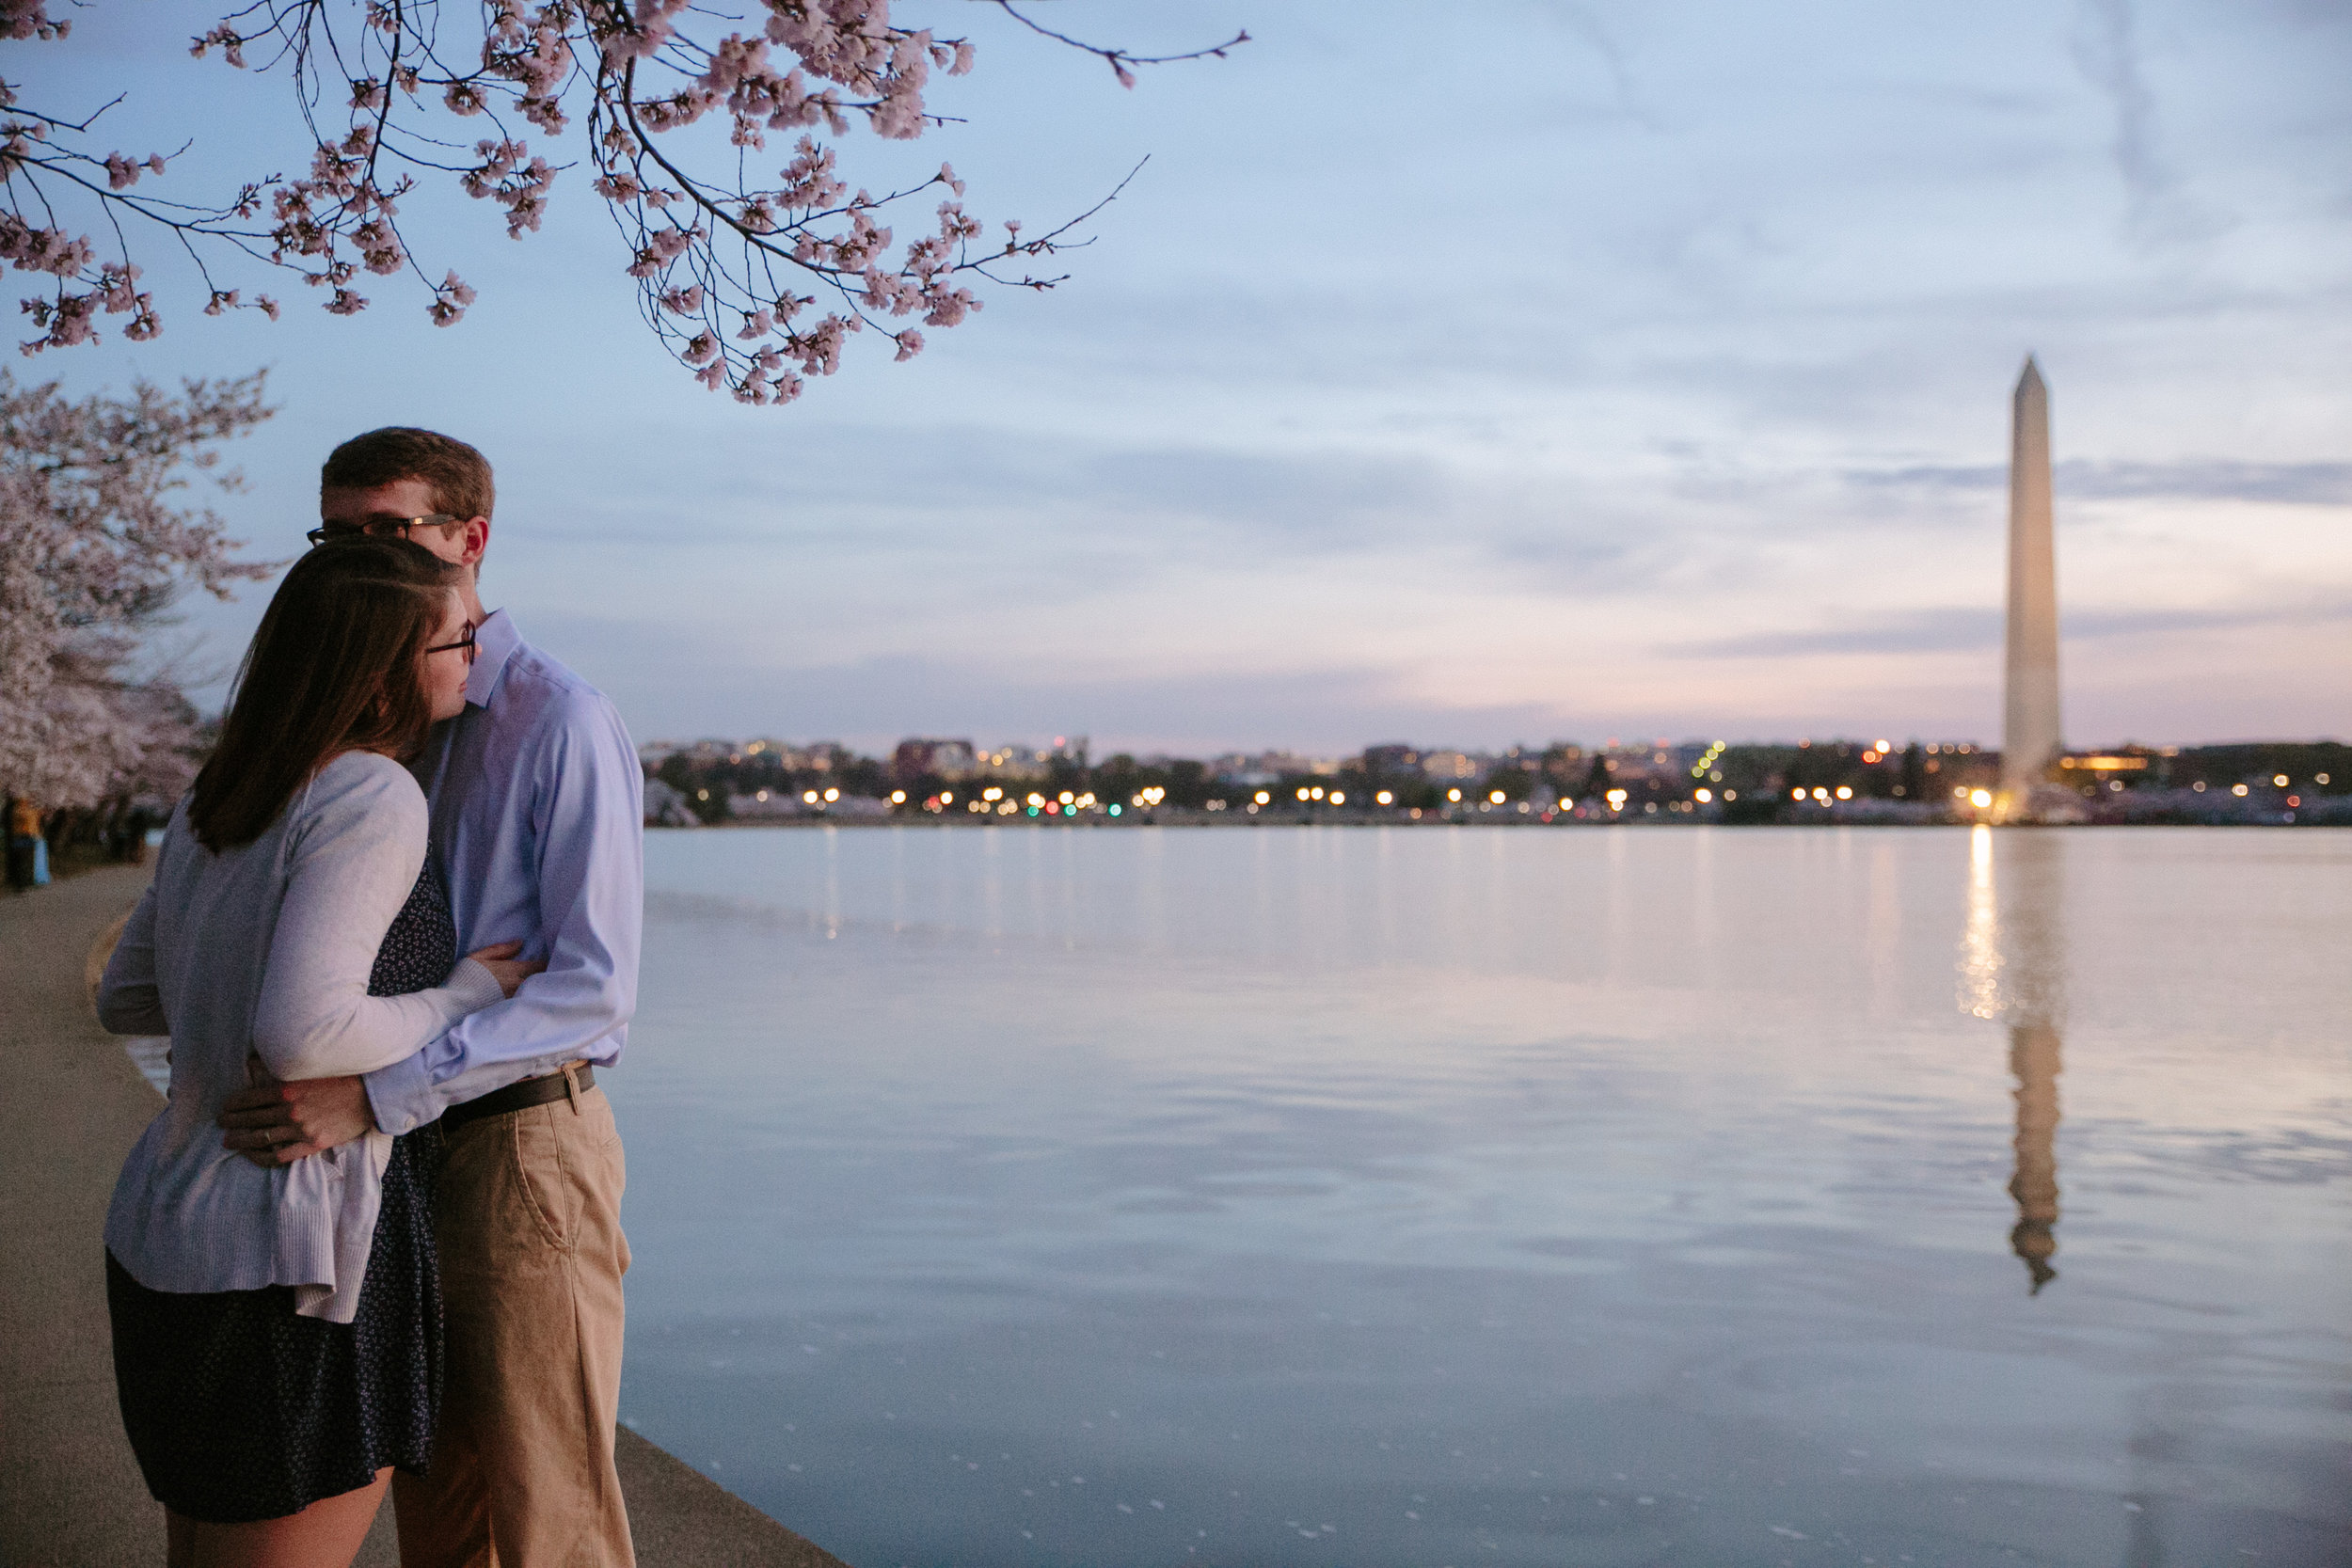 sunrise engagement photos at tidal basin during peak bloom cherry blossoms